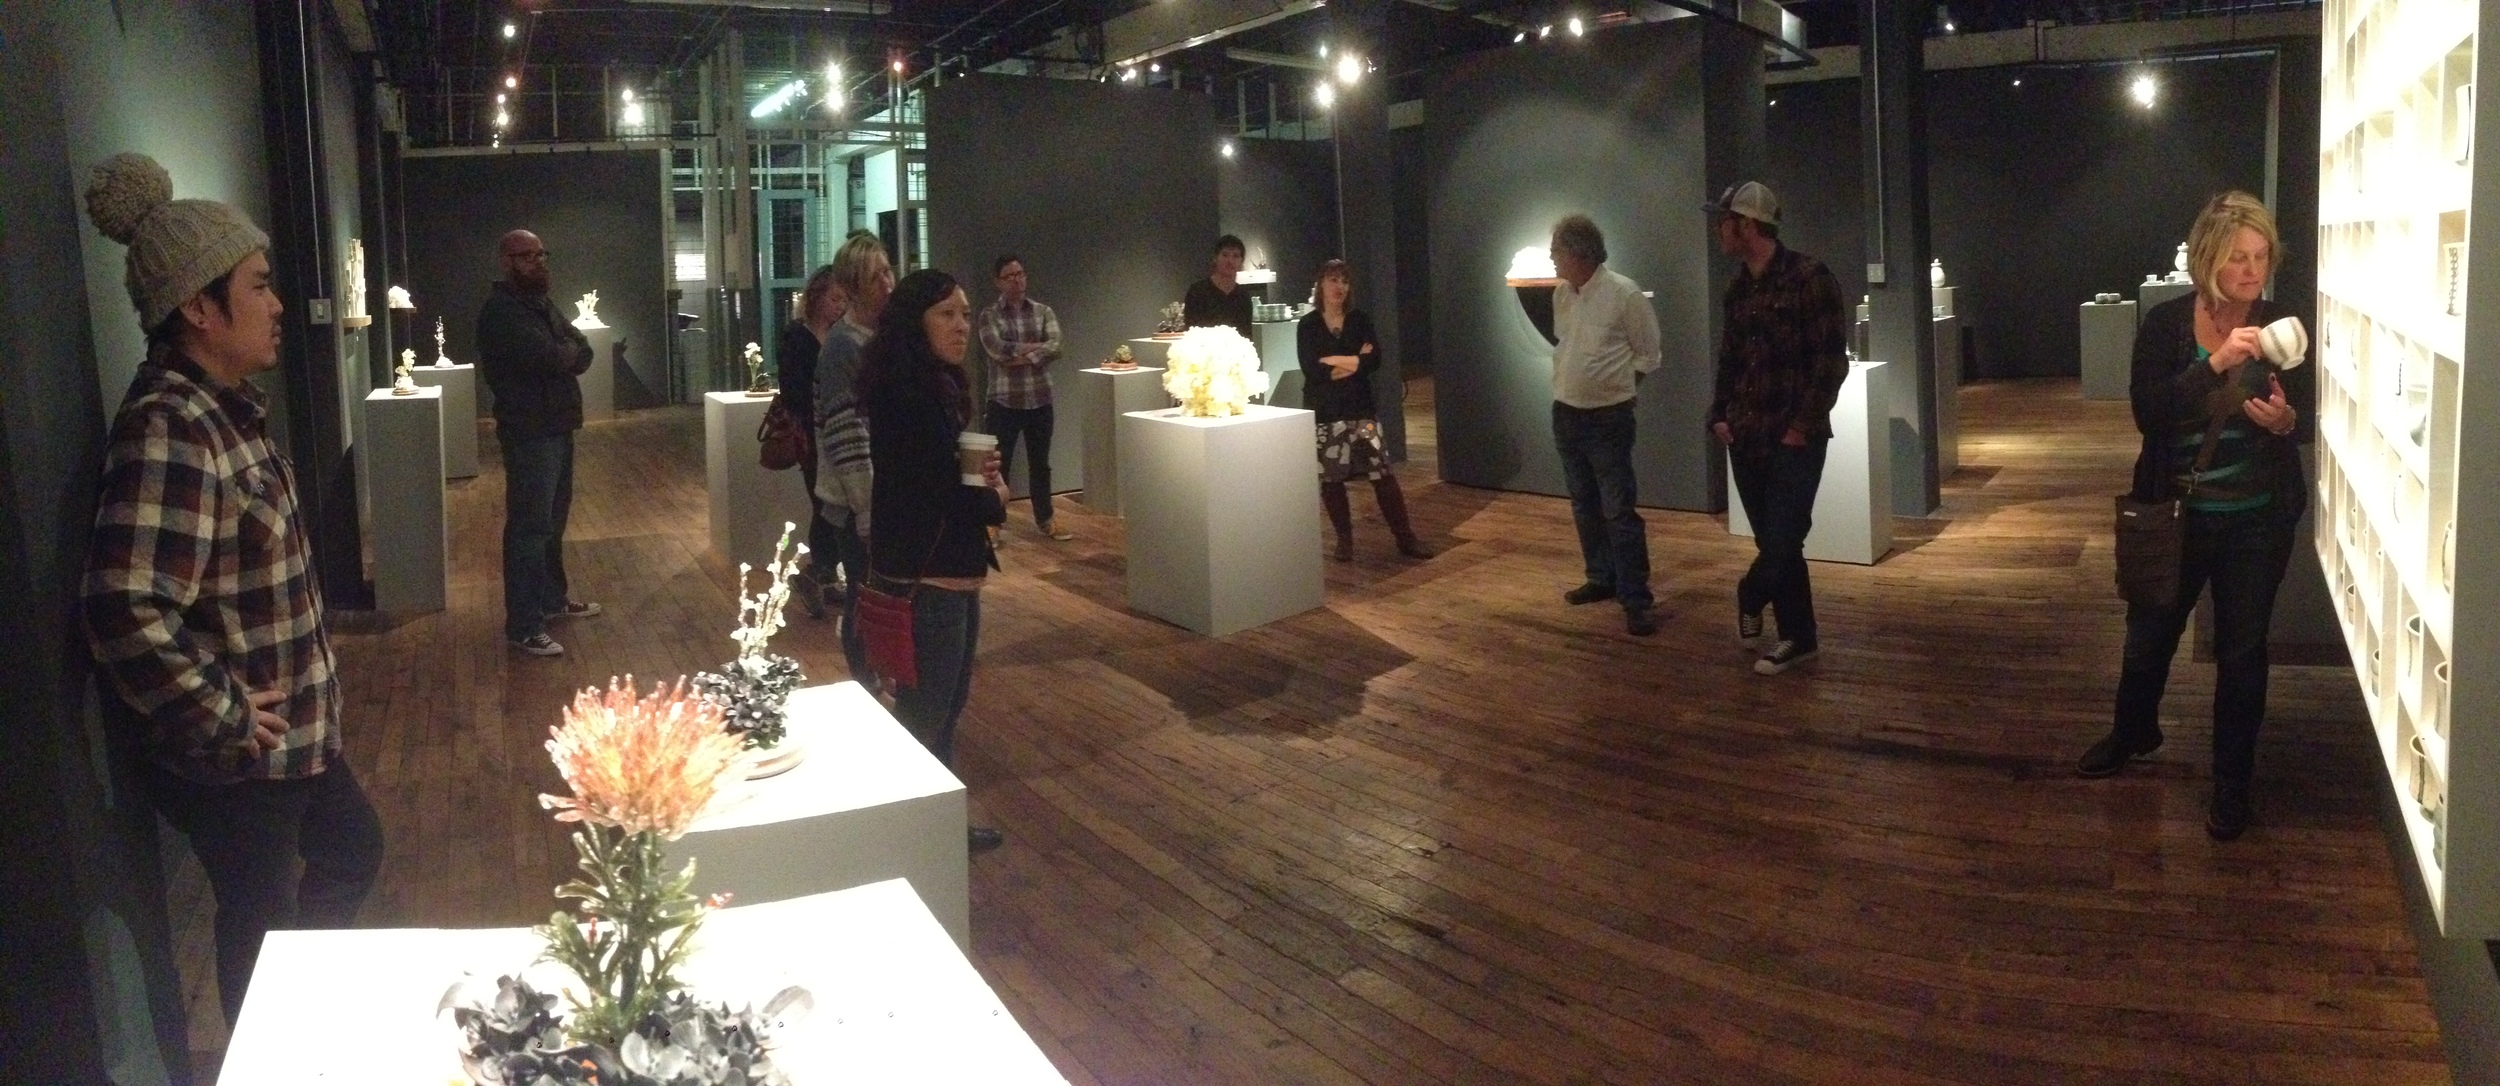 Rain and Paul, speaking about their two-person exhibition at the Belger.